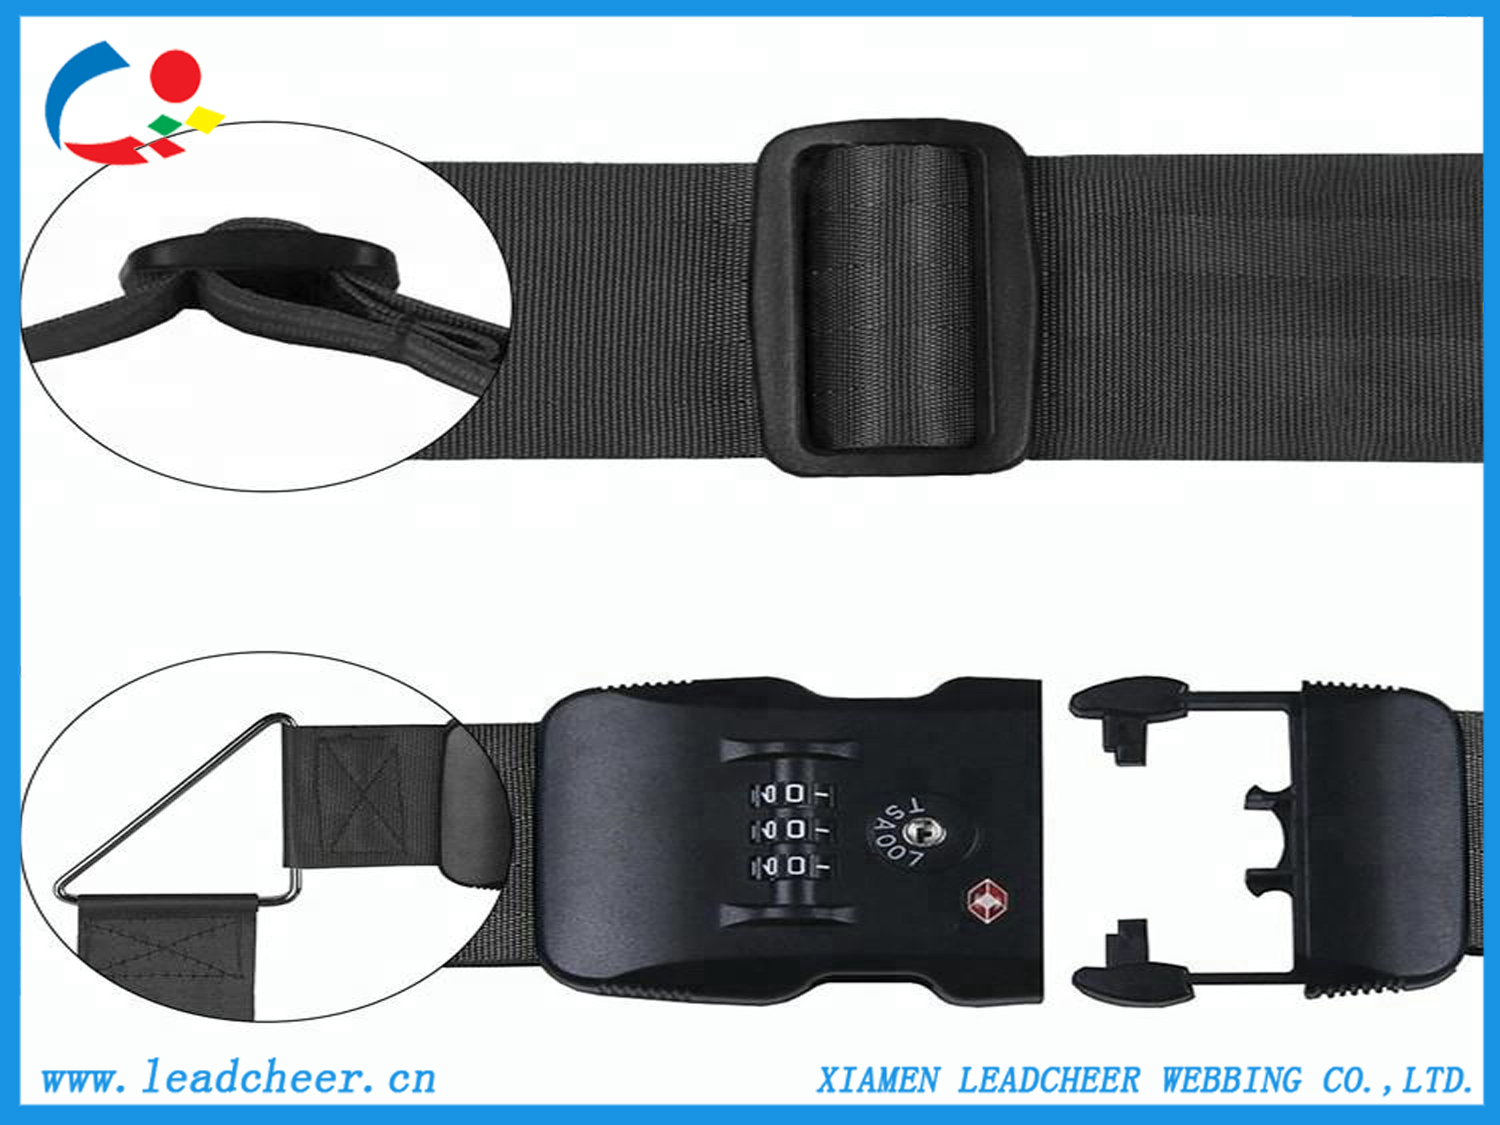 Travel-Luggage-Strap-3-Dial-Approved-Lock 副本.jpg